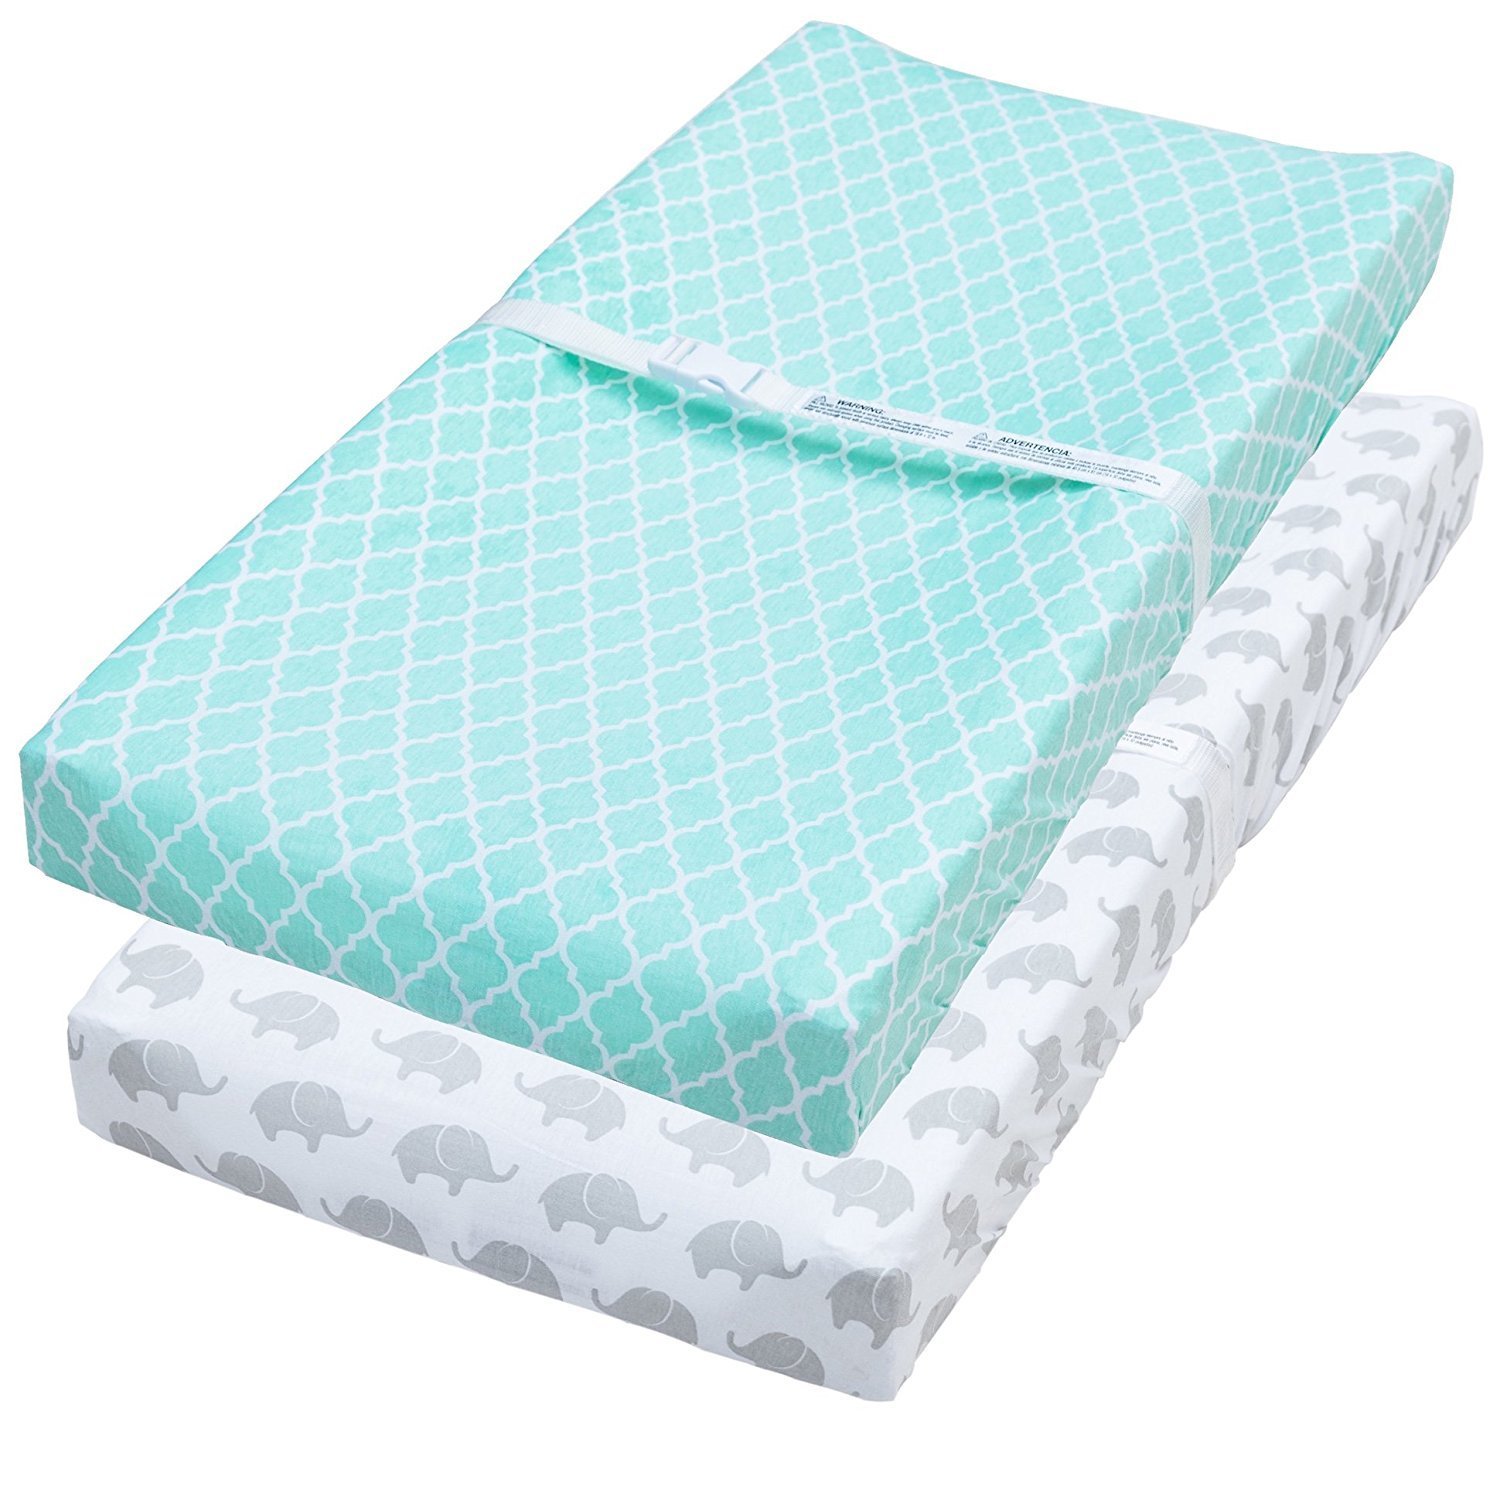 Leakproof Changing Pad Covers, 2 Pack Mint & Elephant Fitted Soft Cotton Sheets by Jomolly